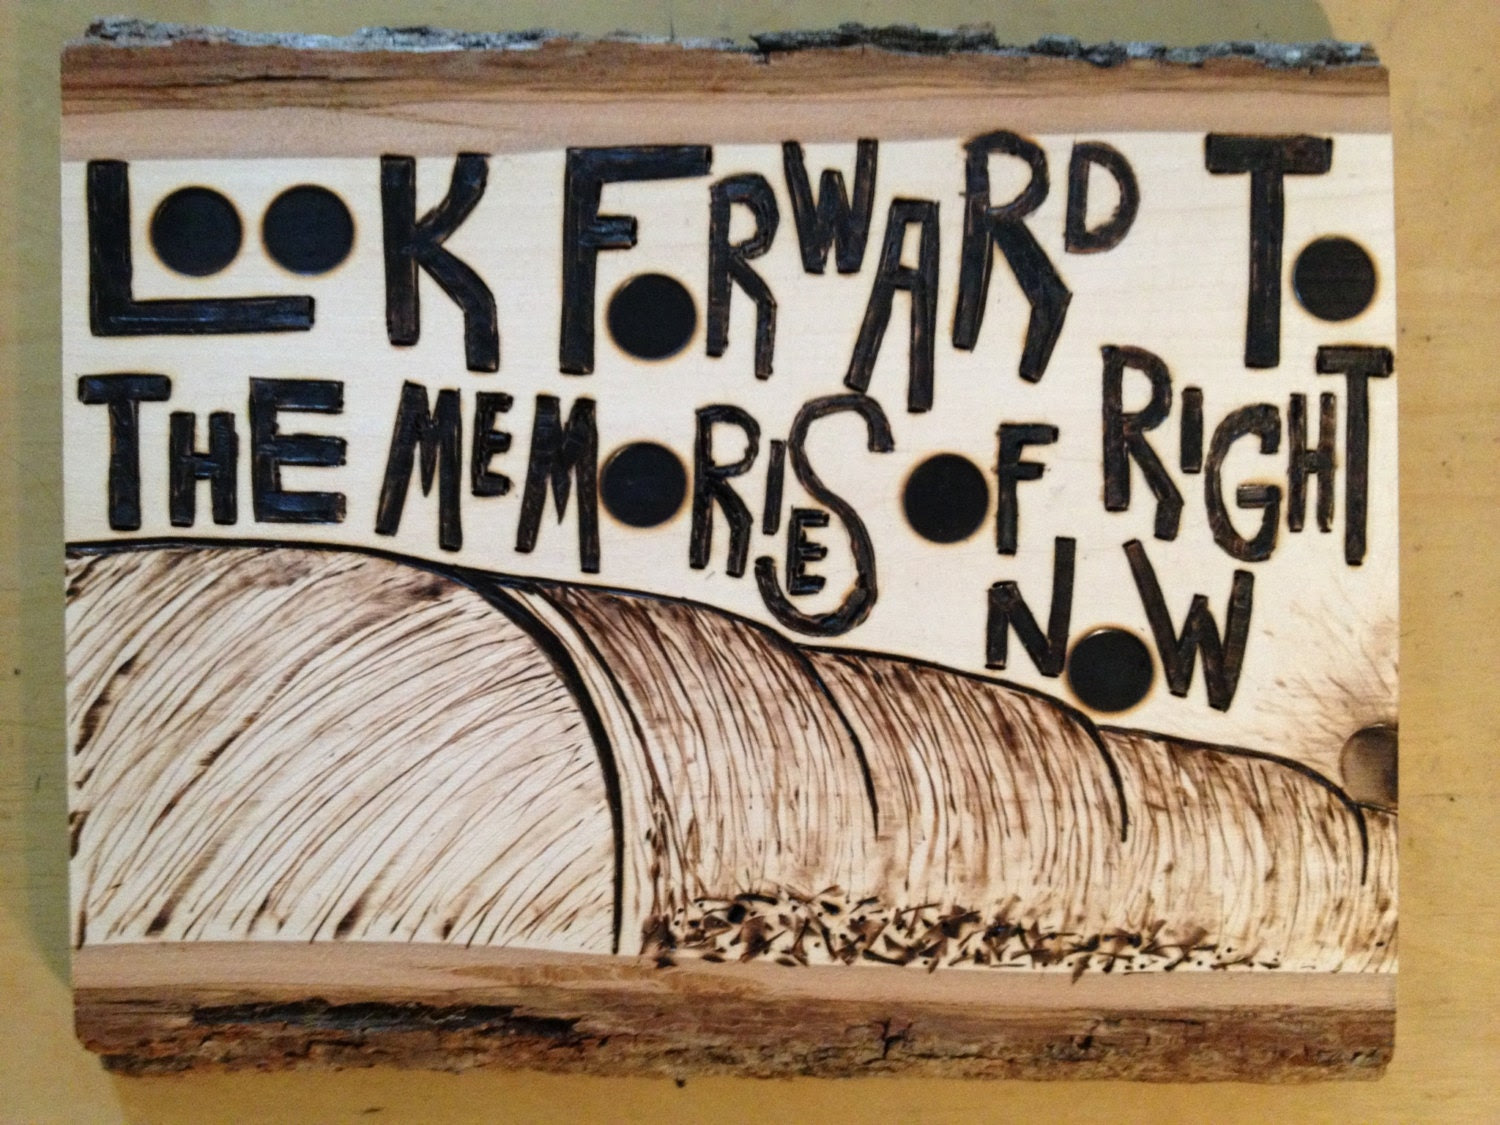 Look forward to the memories of right now. Custom woodburning - TysonKingArt